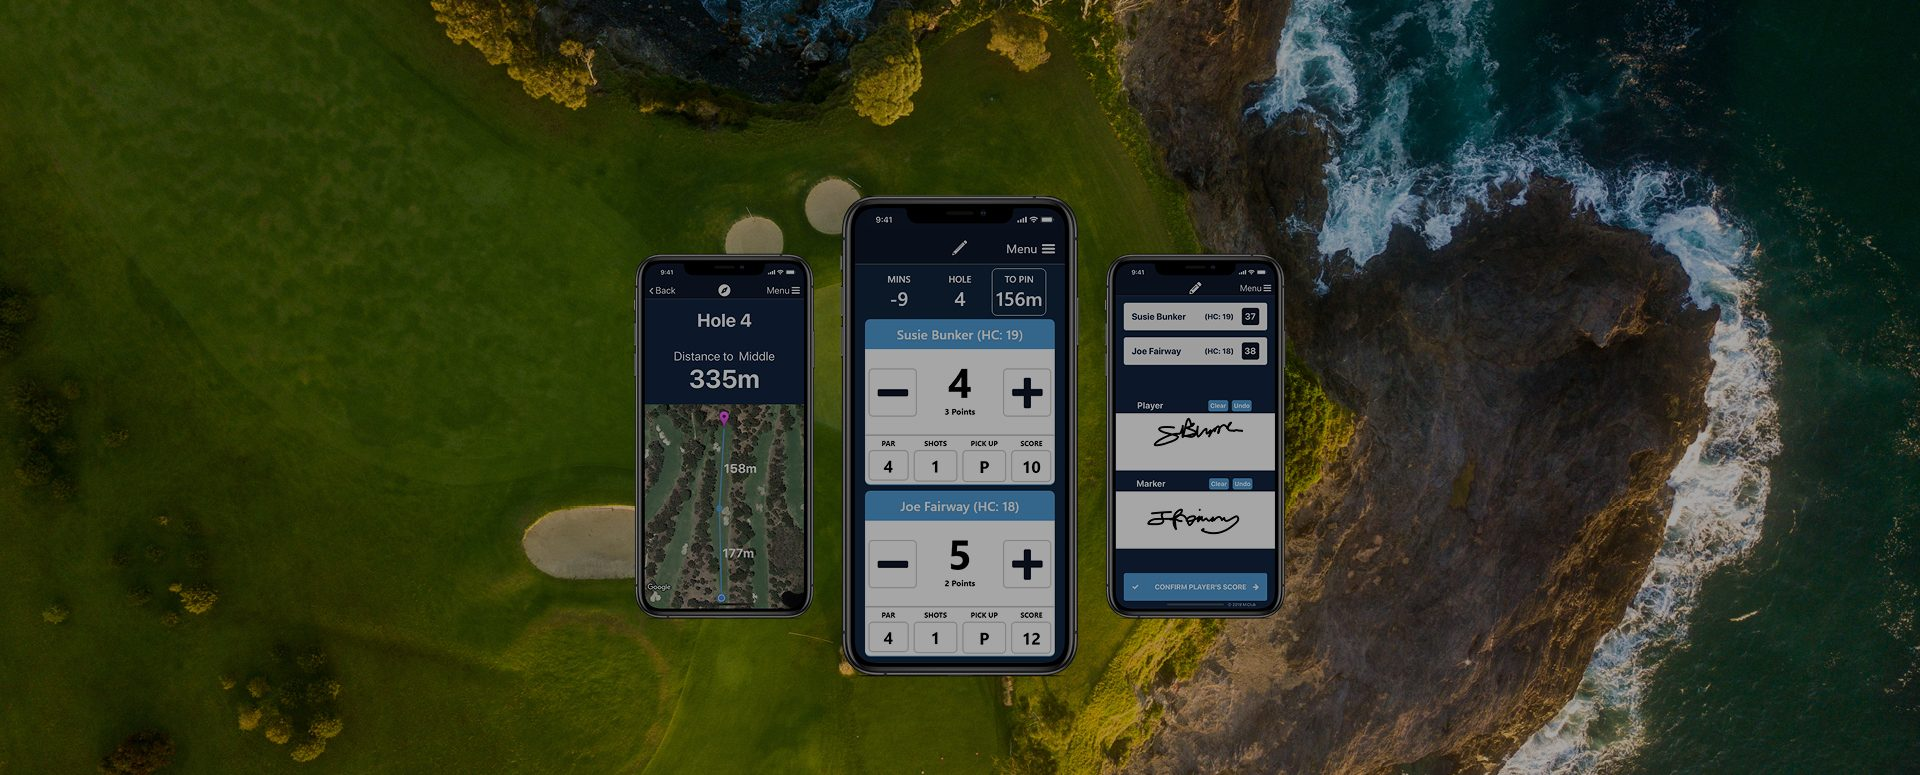 MiScore App - Golf Scorecard and GPS App